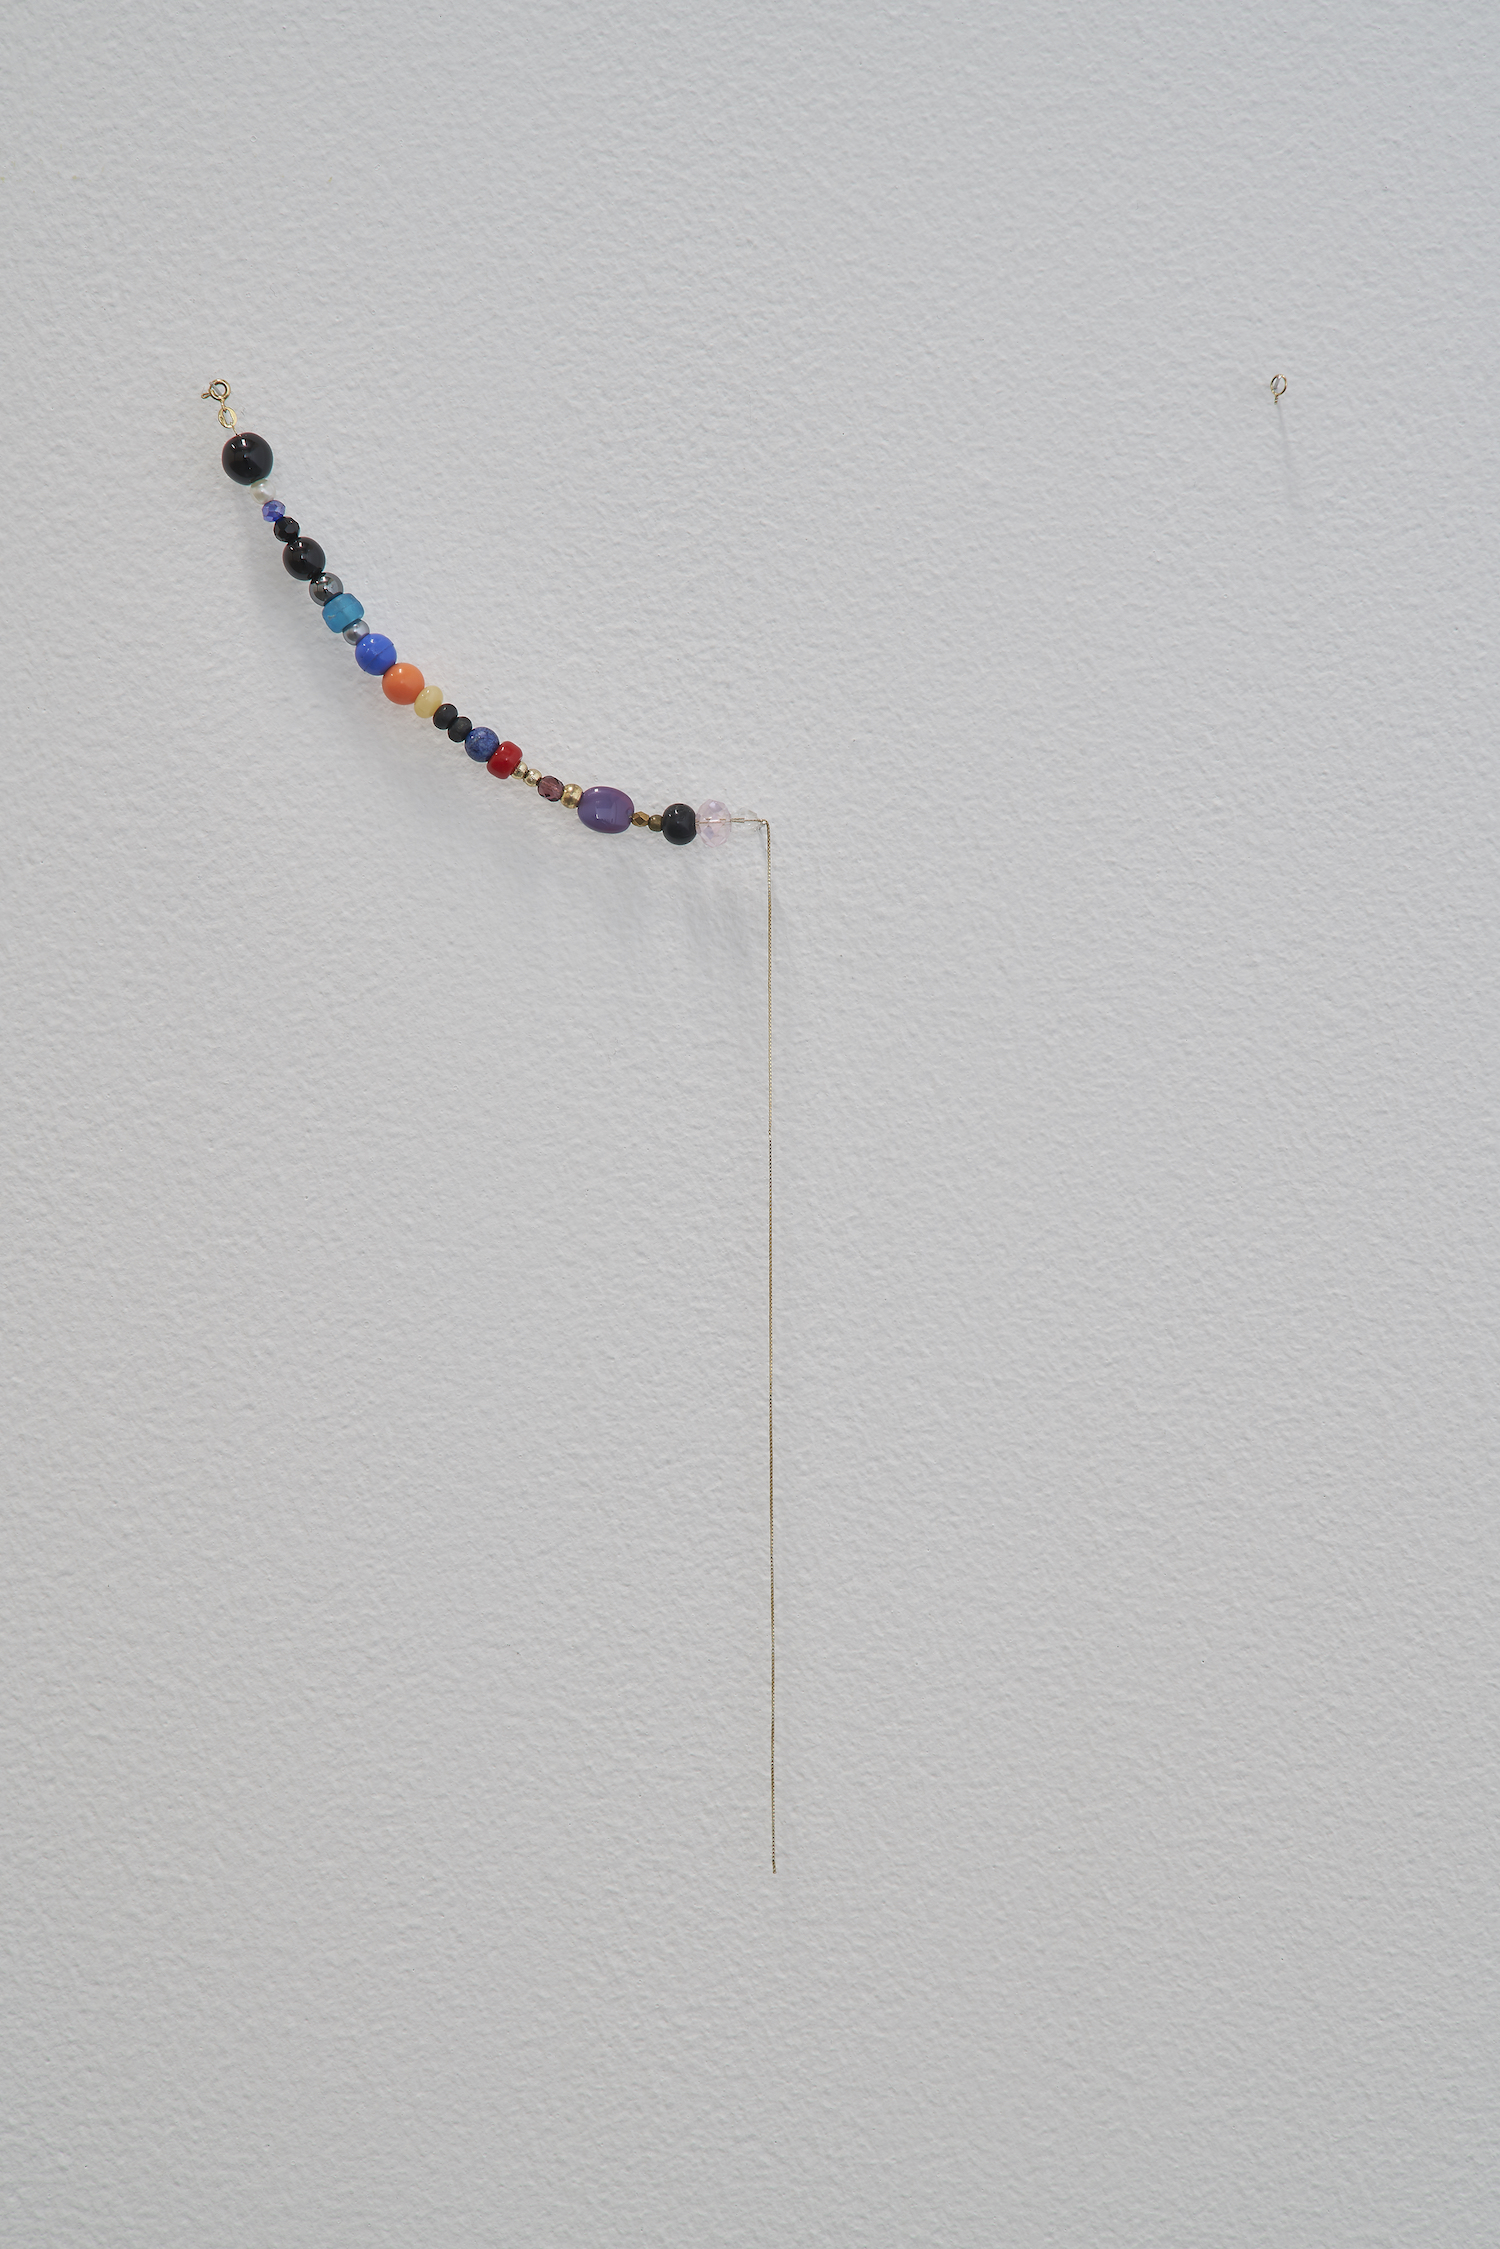 A Necklace of Found Beads 2014 - 2019 18-carat gold chain, 25 found beads Dimensions variable   A necklace is composed of beads found by chance by the artist between 2014 and 2019. Left open, it will complete once the number of beads matches the age of the artist.